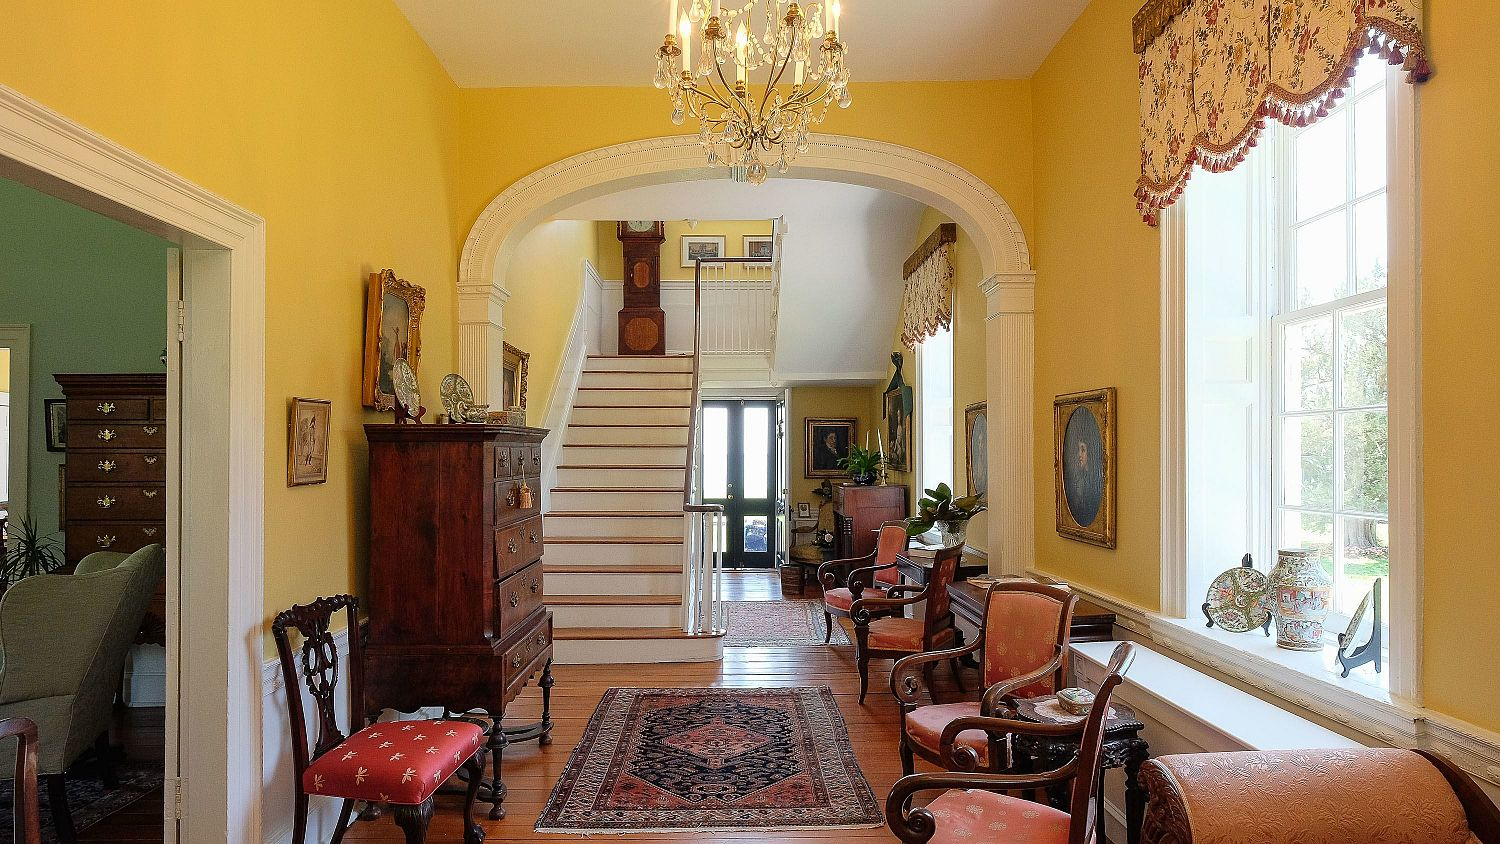 The entrance foyer of the Mulberry Hill manor house